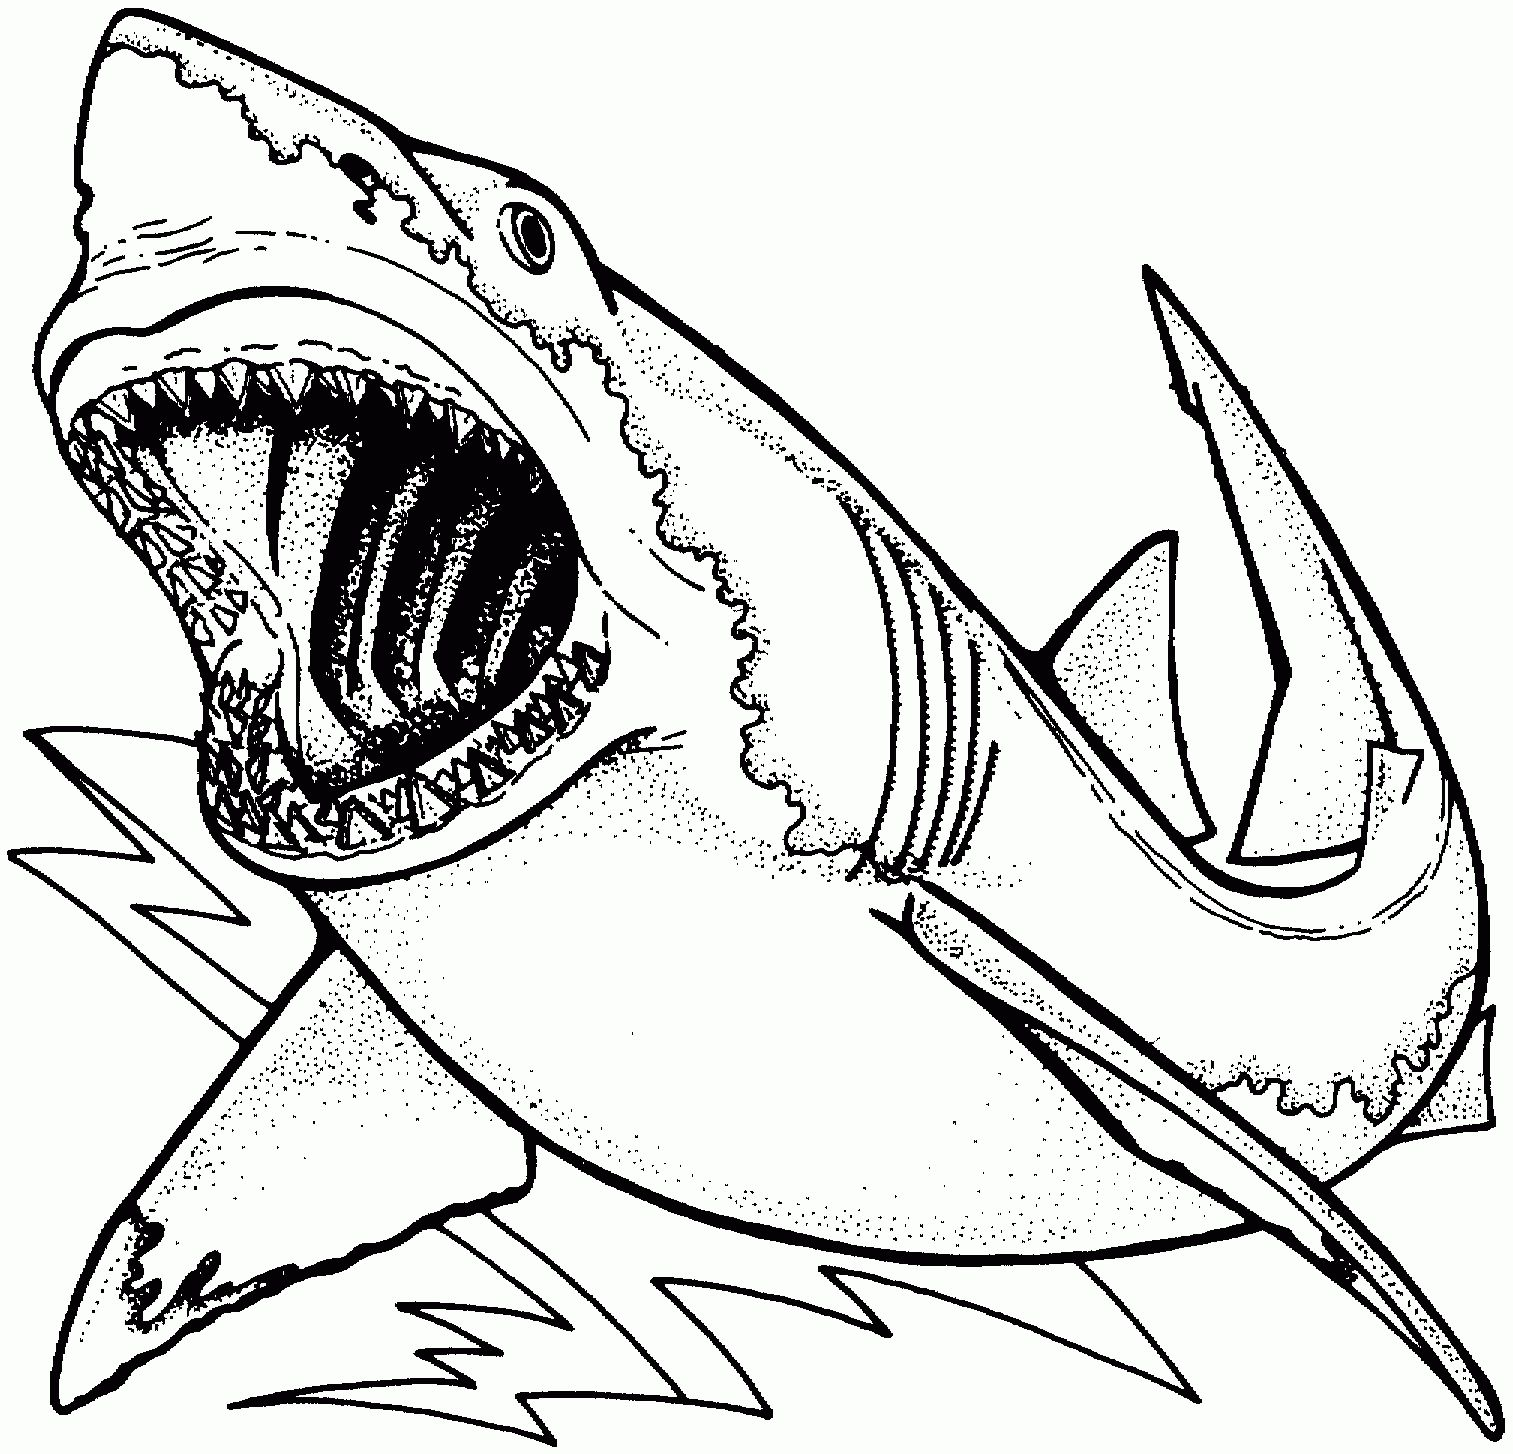 Compromise Shark Colouring Pictures Coloring Page Unique Whale Cool For Pages Sharks Shark Coloring Pages Animal Coloring Pages Cars Coloring Pages